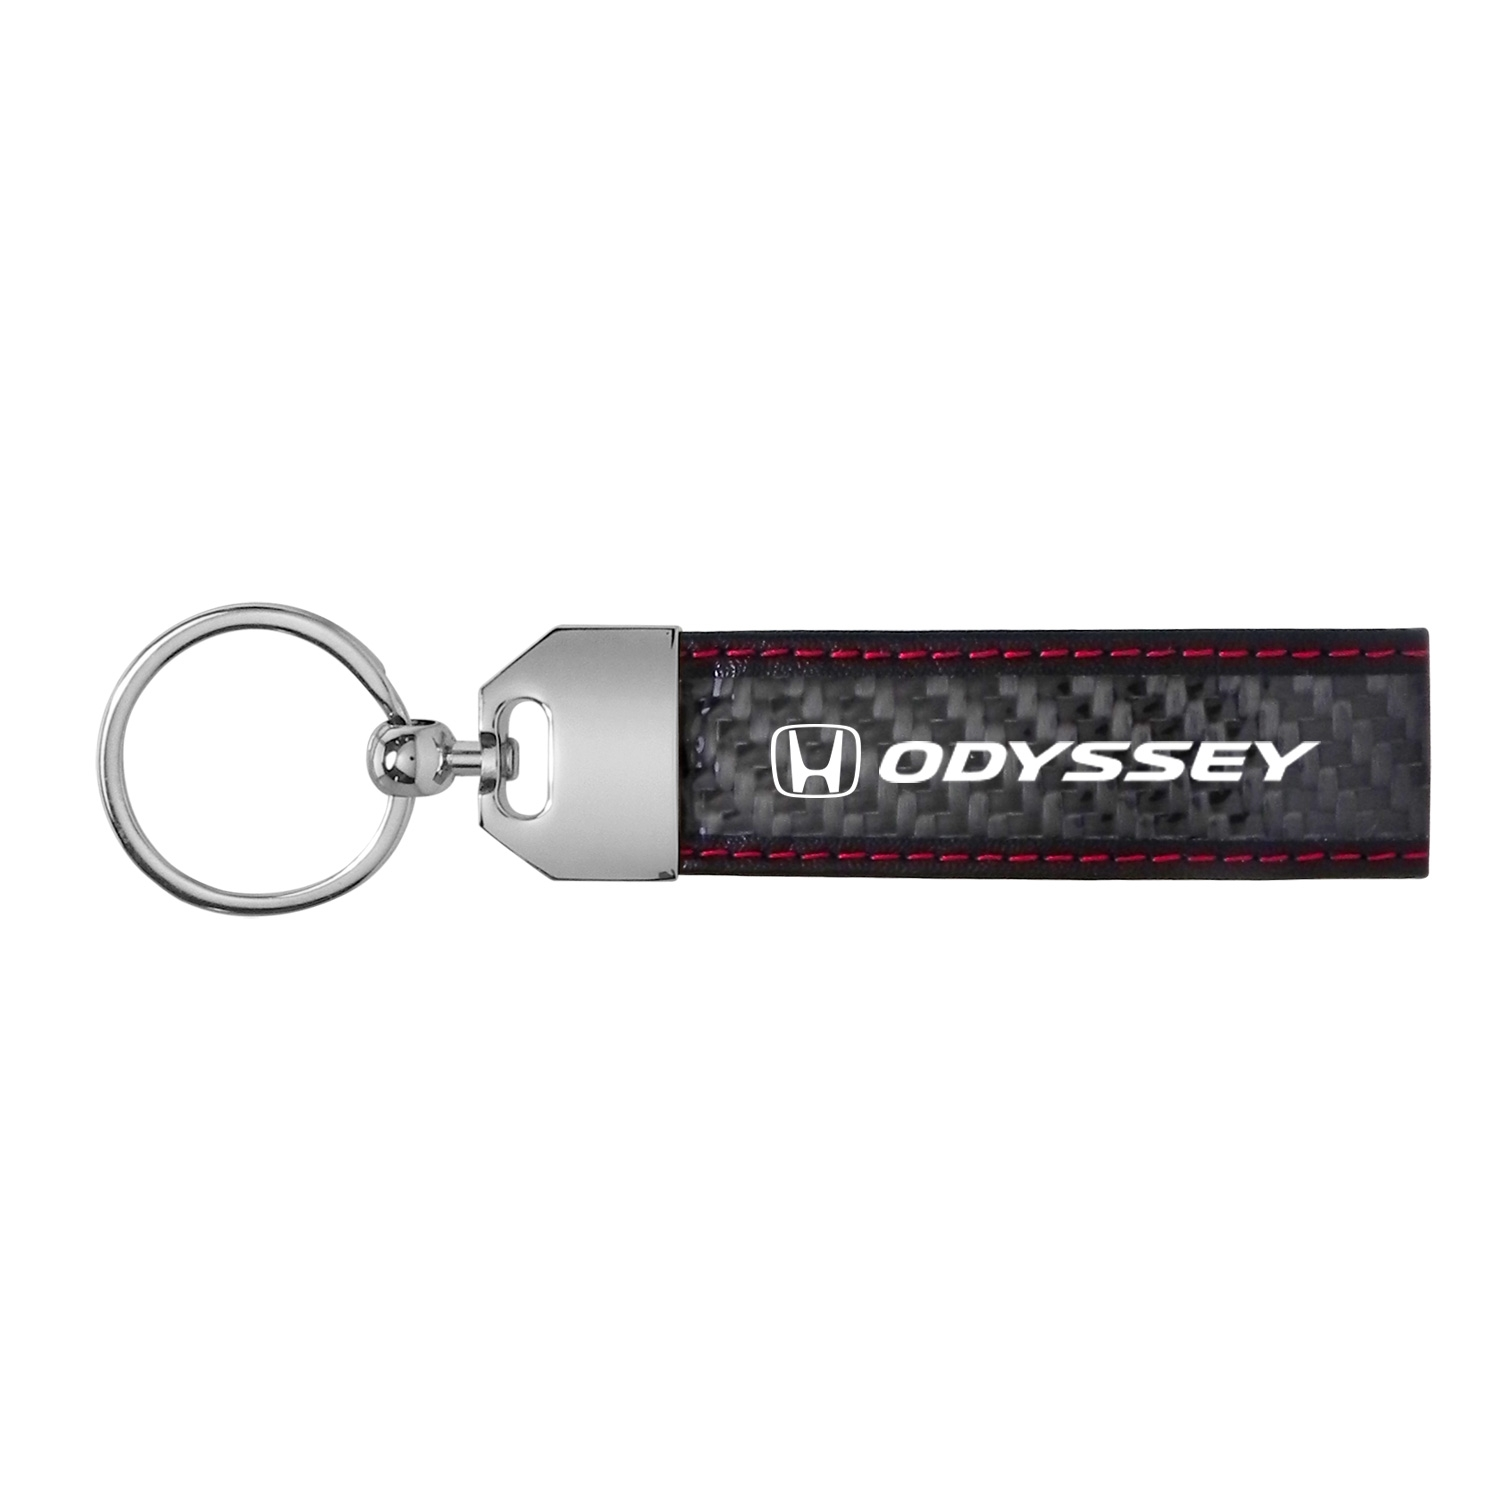 Honda Odyssey Real Carbon Fiber Leather Key Chain with Red Stitching